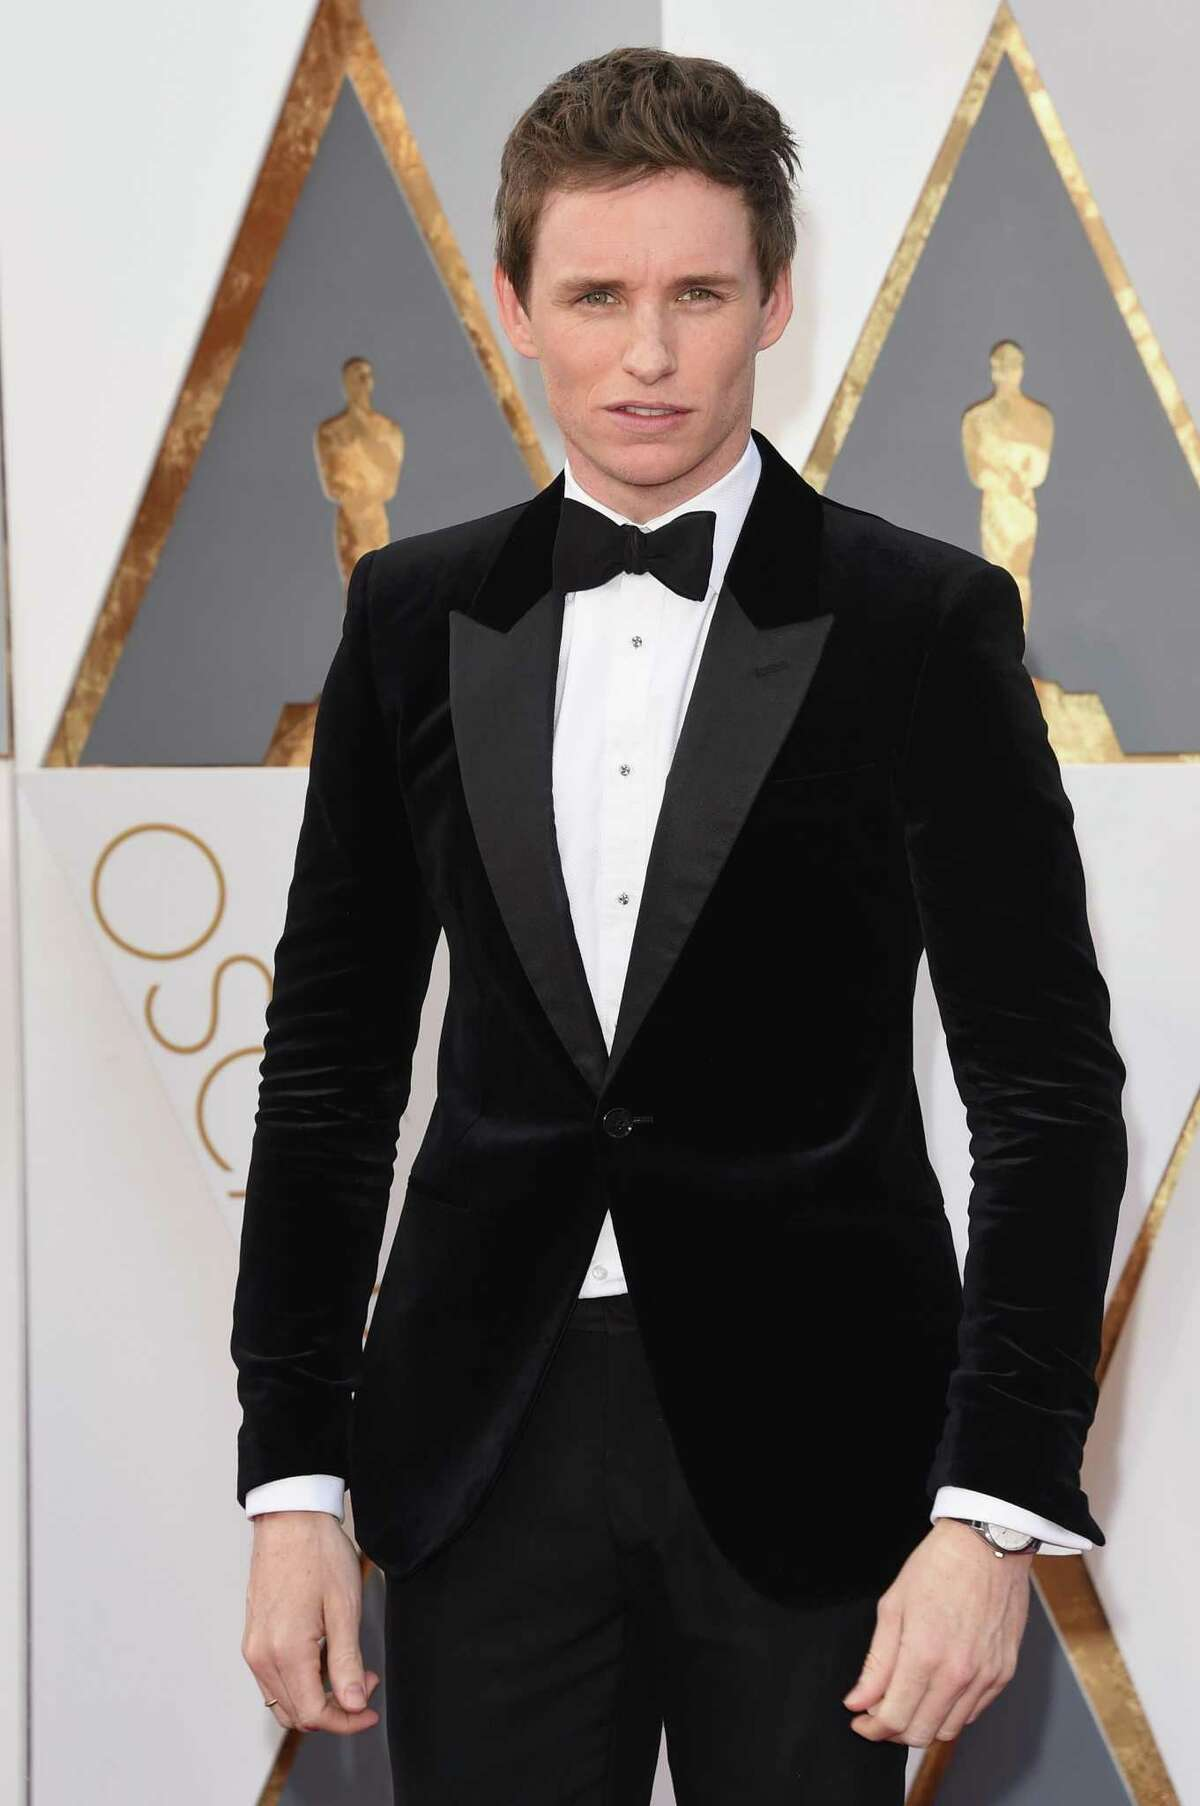 HOLLYWOOD, CA - FEBRUARY 28: Actor Eddie Redmayne attends the 88th Annual Academy Awards at Hollywood & Highland Center on February 28, 2016 in Hollywood, California. (Photo by Jason Merritt/Getty Images)